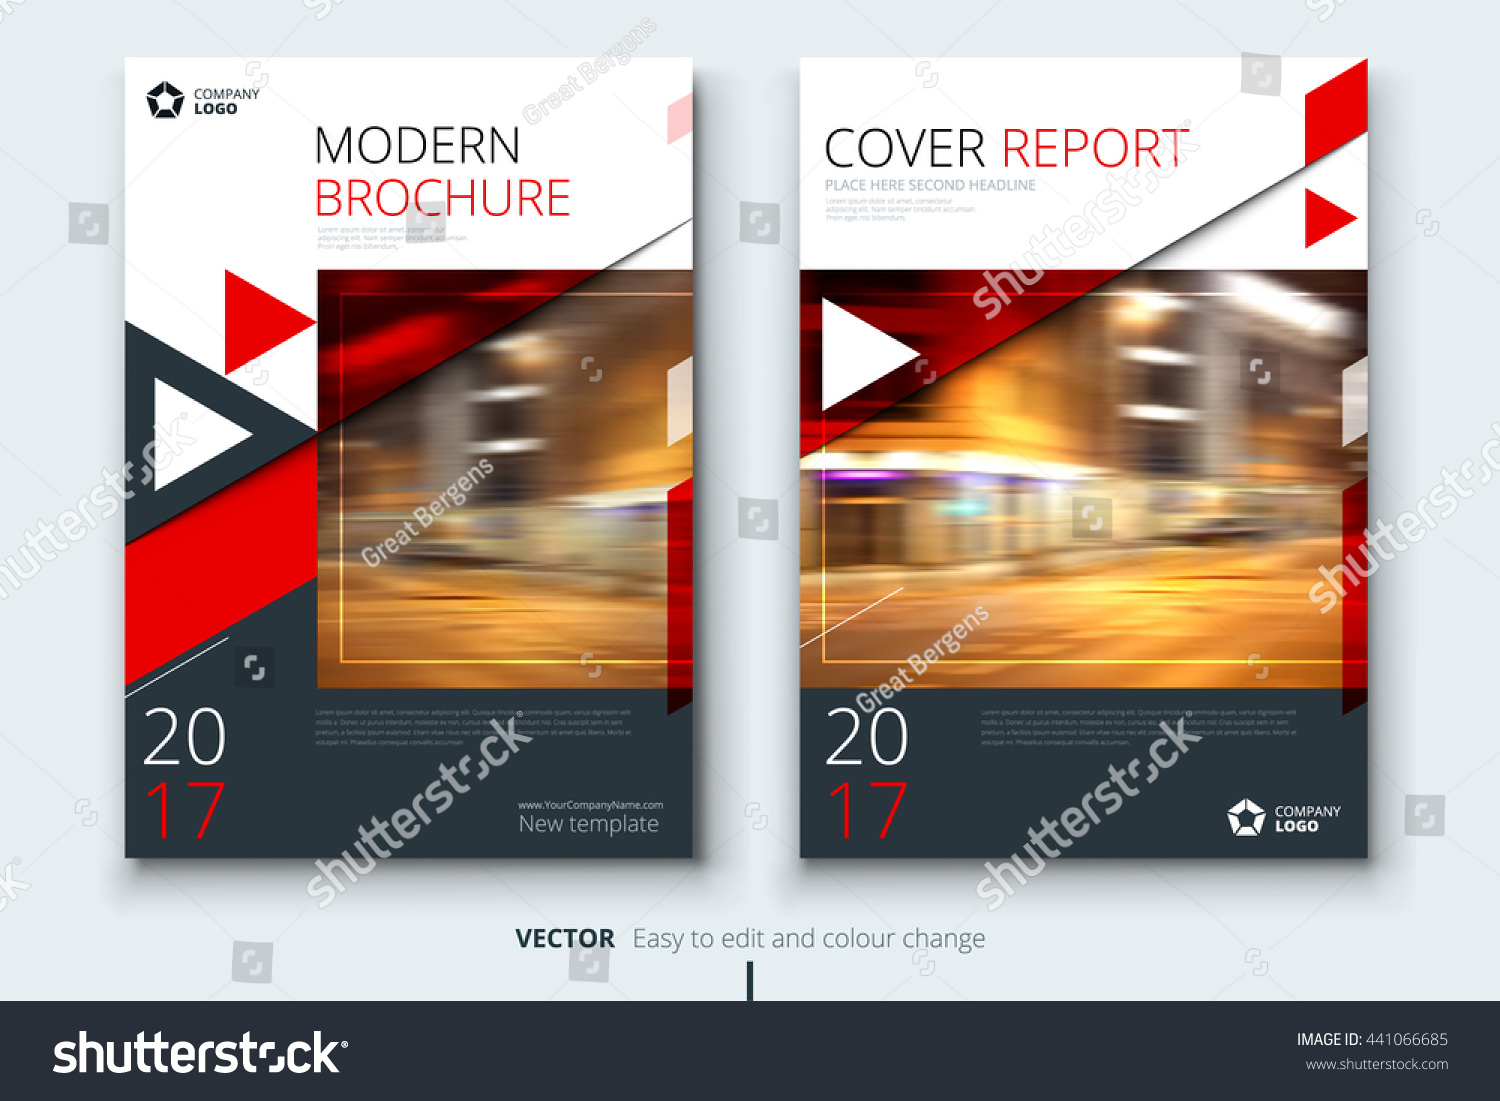 red brochure template - red brochure design corporate business template stock